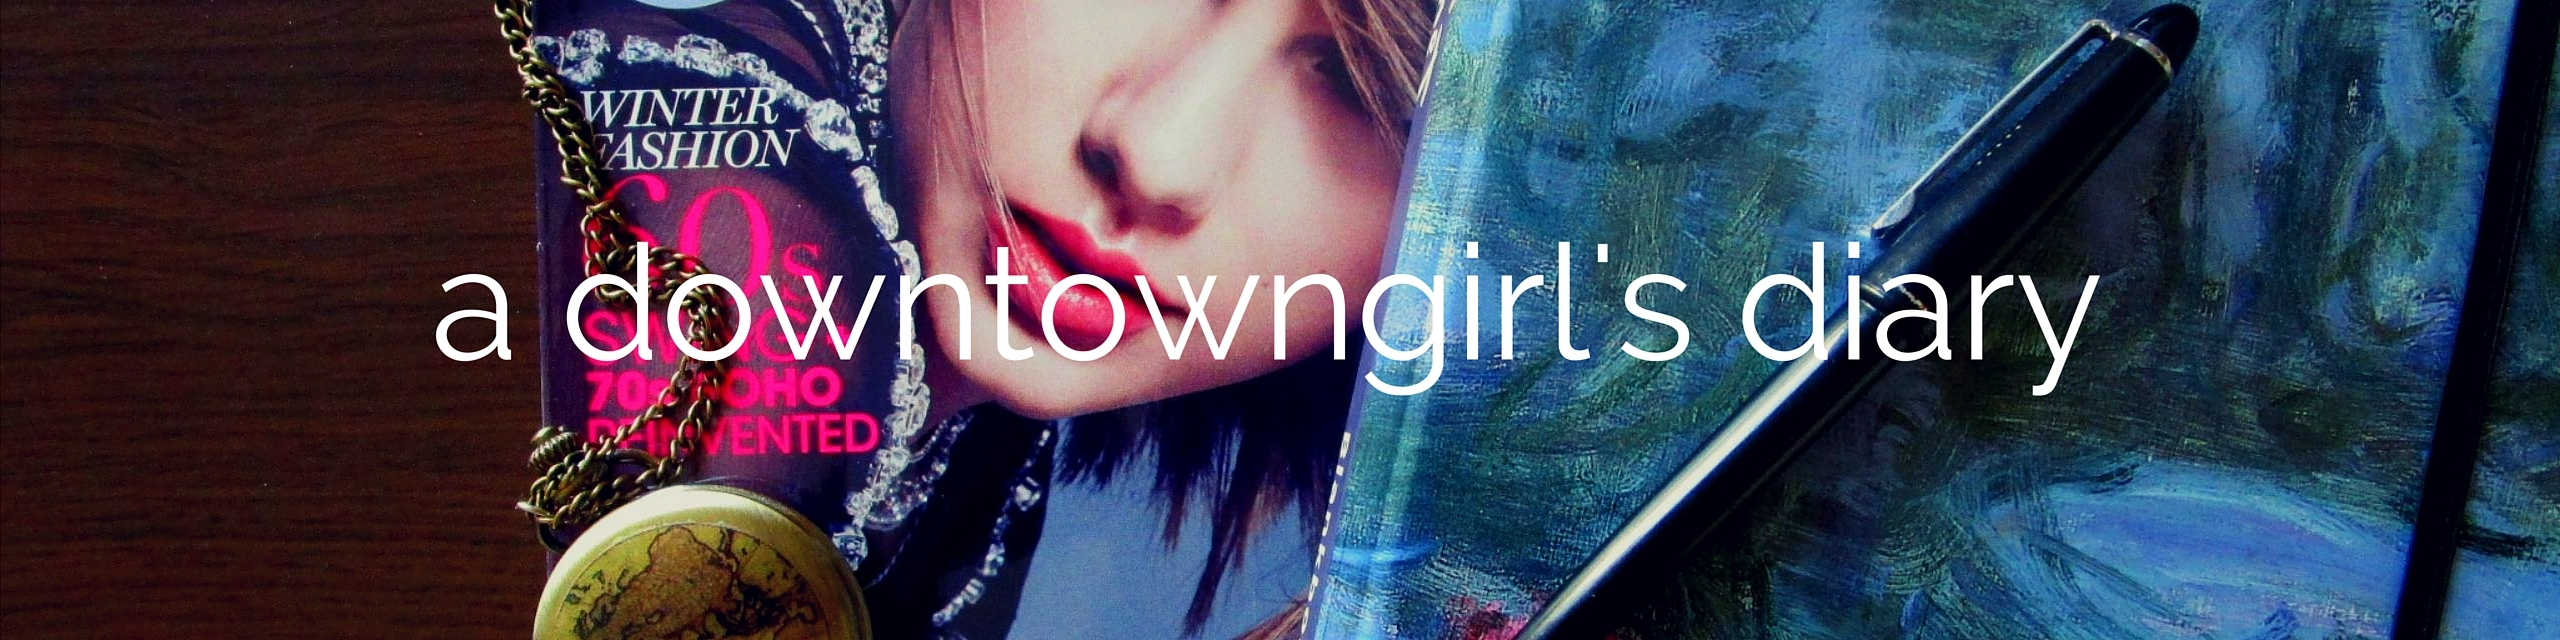 a downtowngirl's diary - travel and lifestyle blog